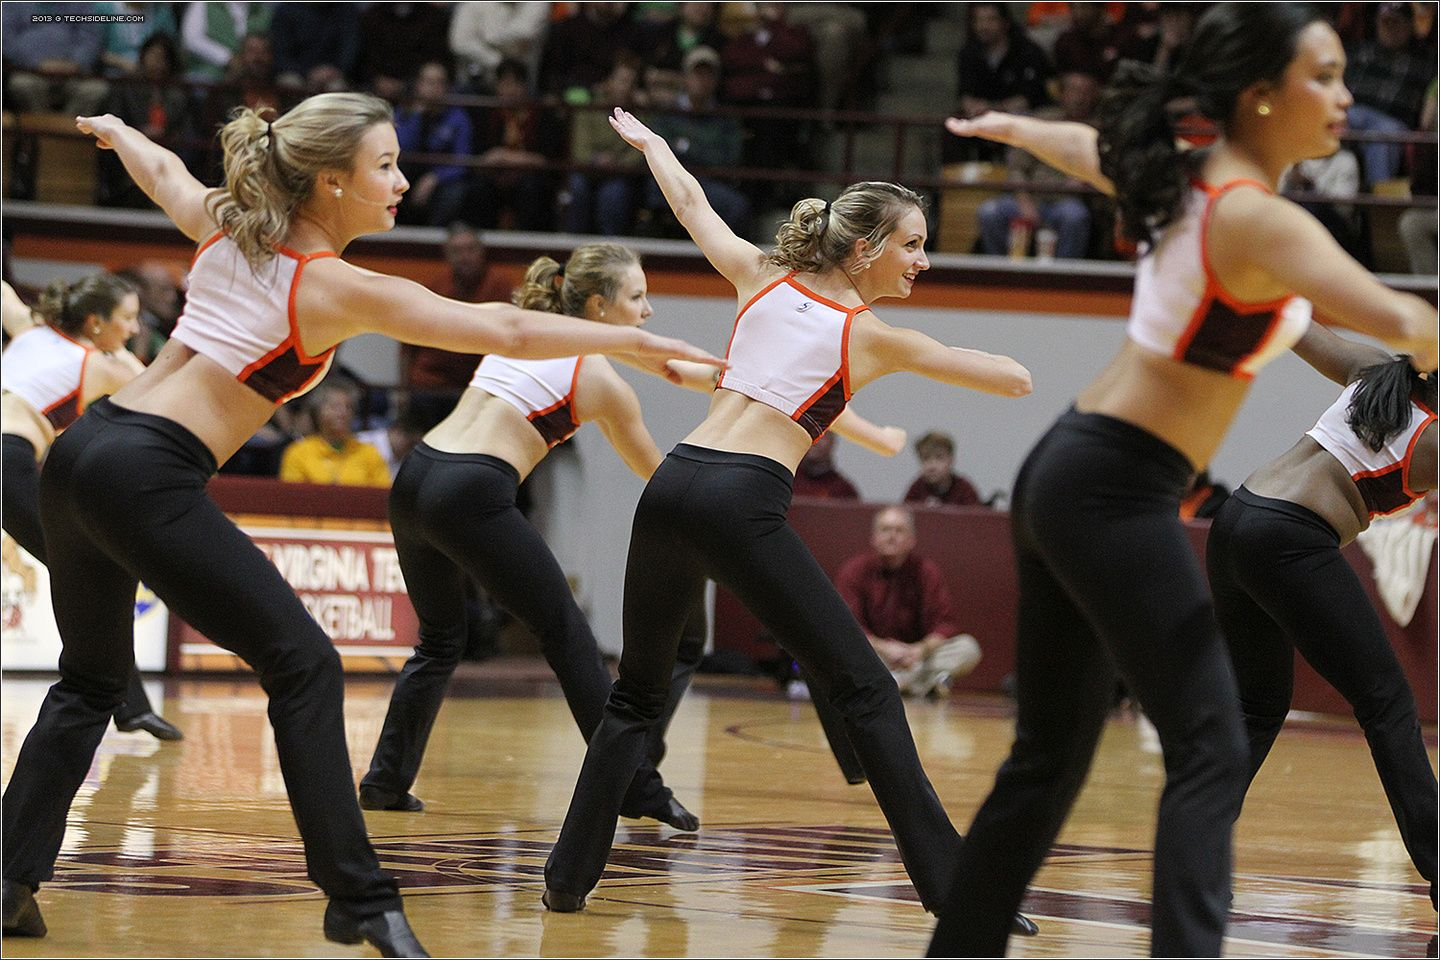 Virginia Tech's High Techs Dance Team. 2013.03.02. Clemson